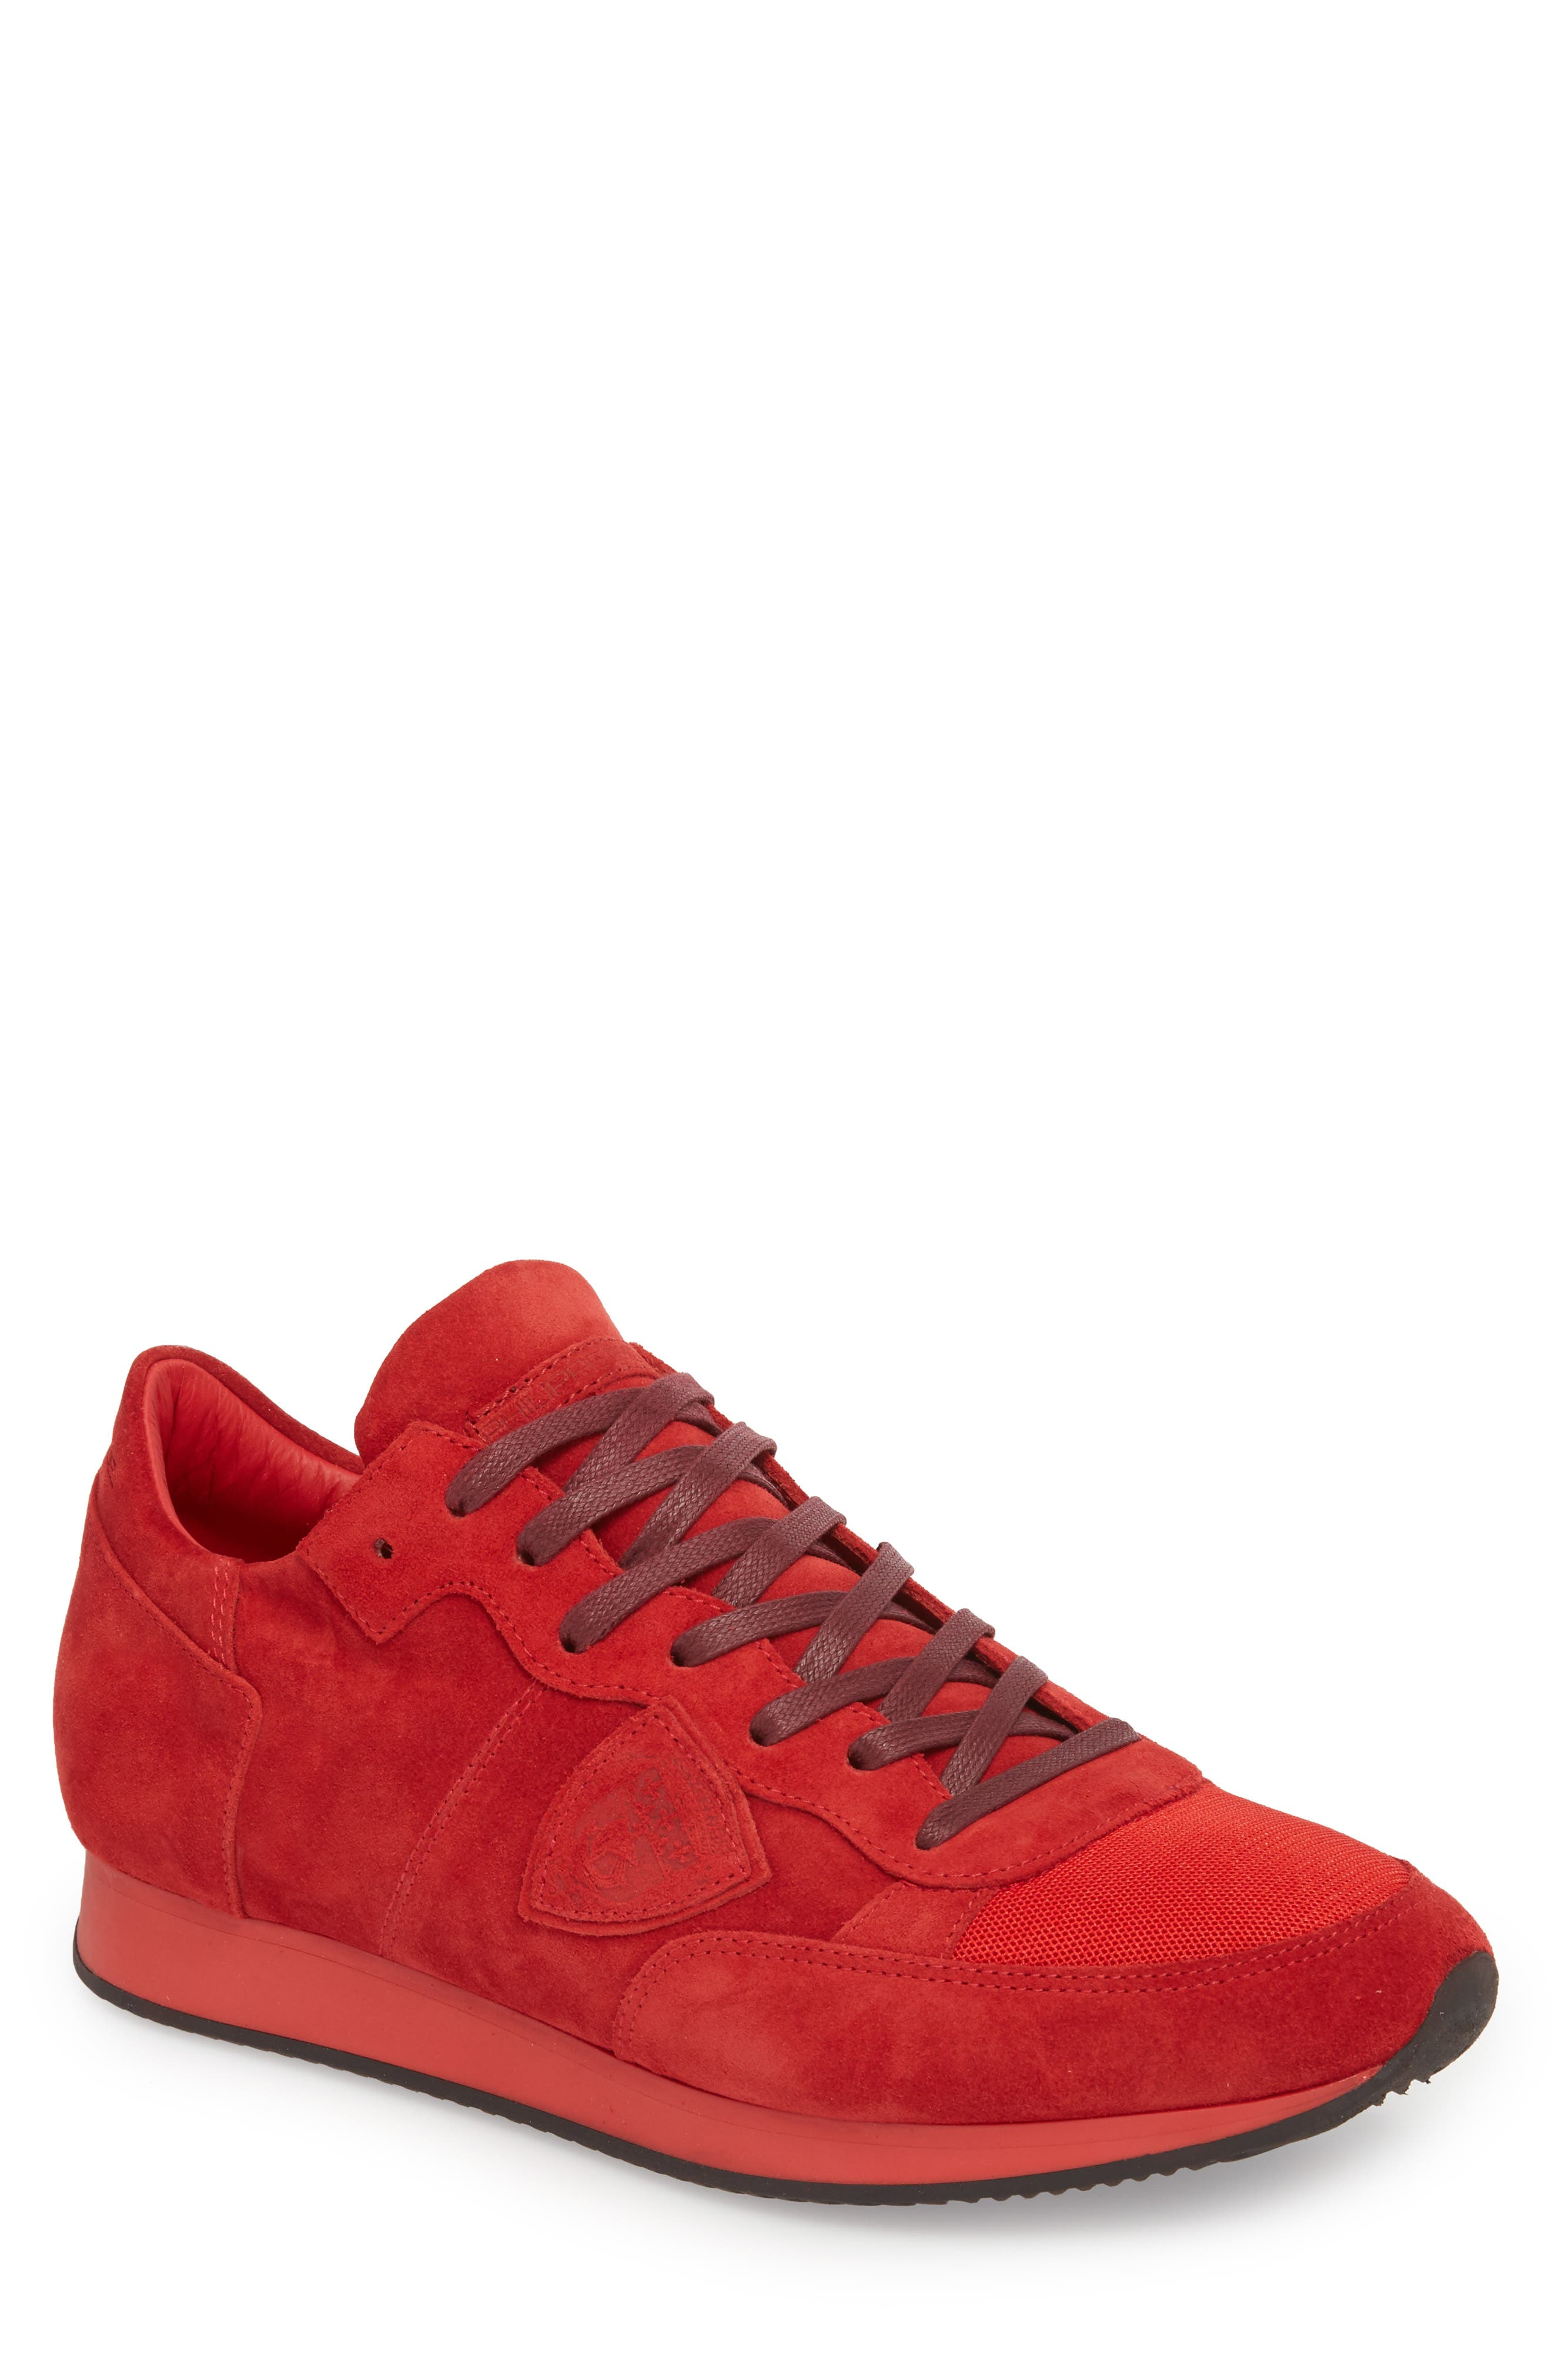 Tropez Low Top Sneaker,                         Main,                         color, Red Suede